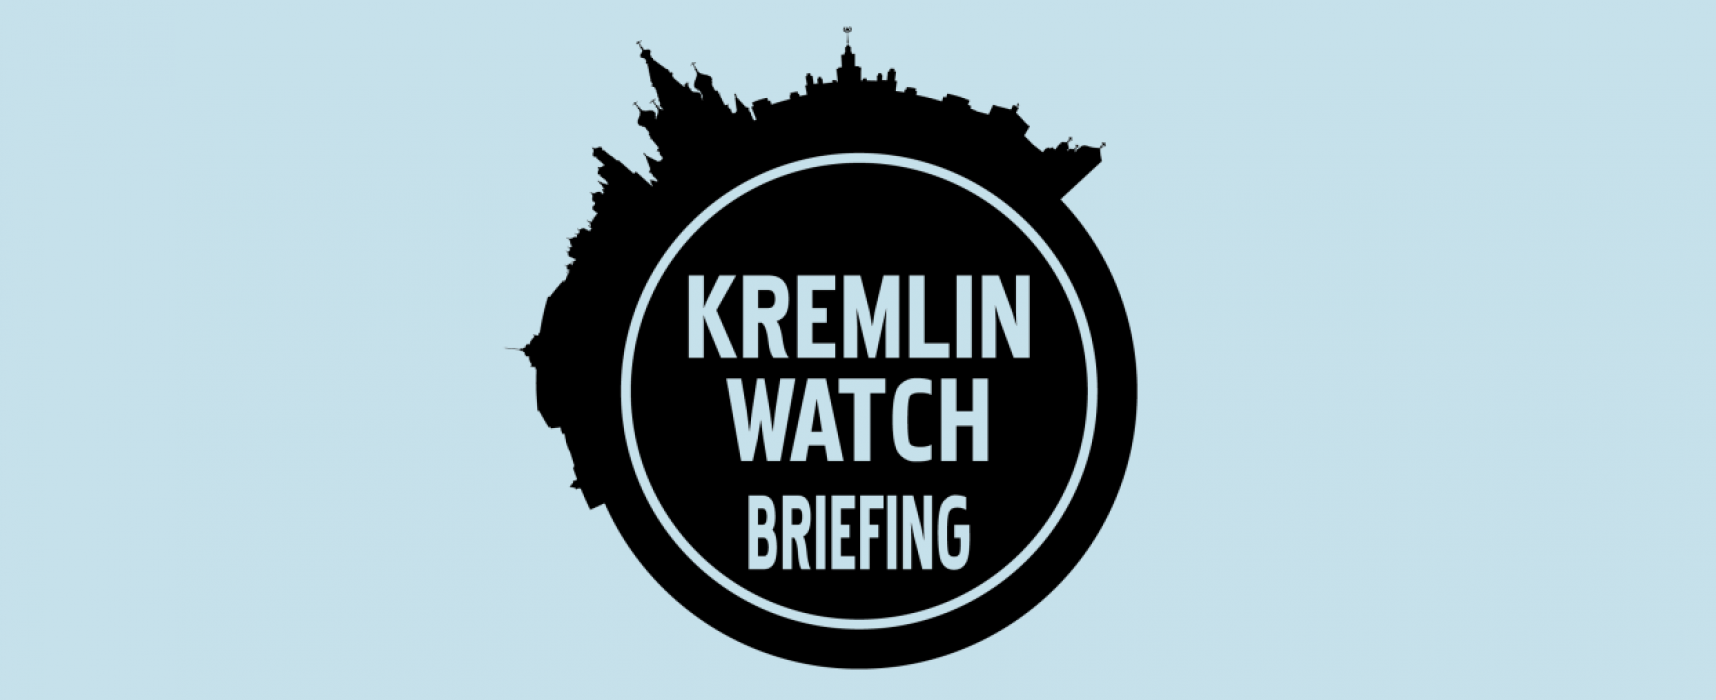 Kremlin Watch Briefing: Italian Lega party turns to Russia for funding